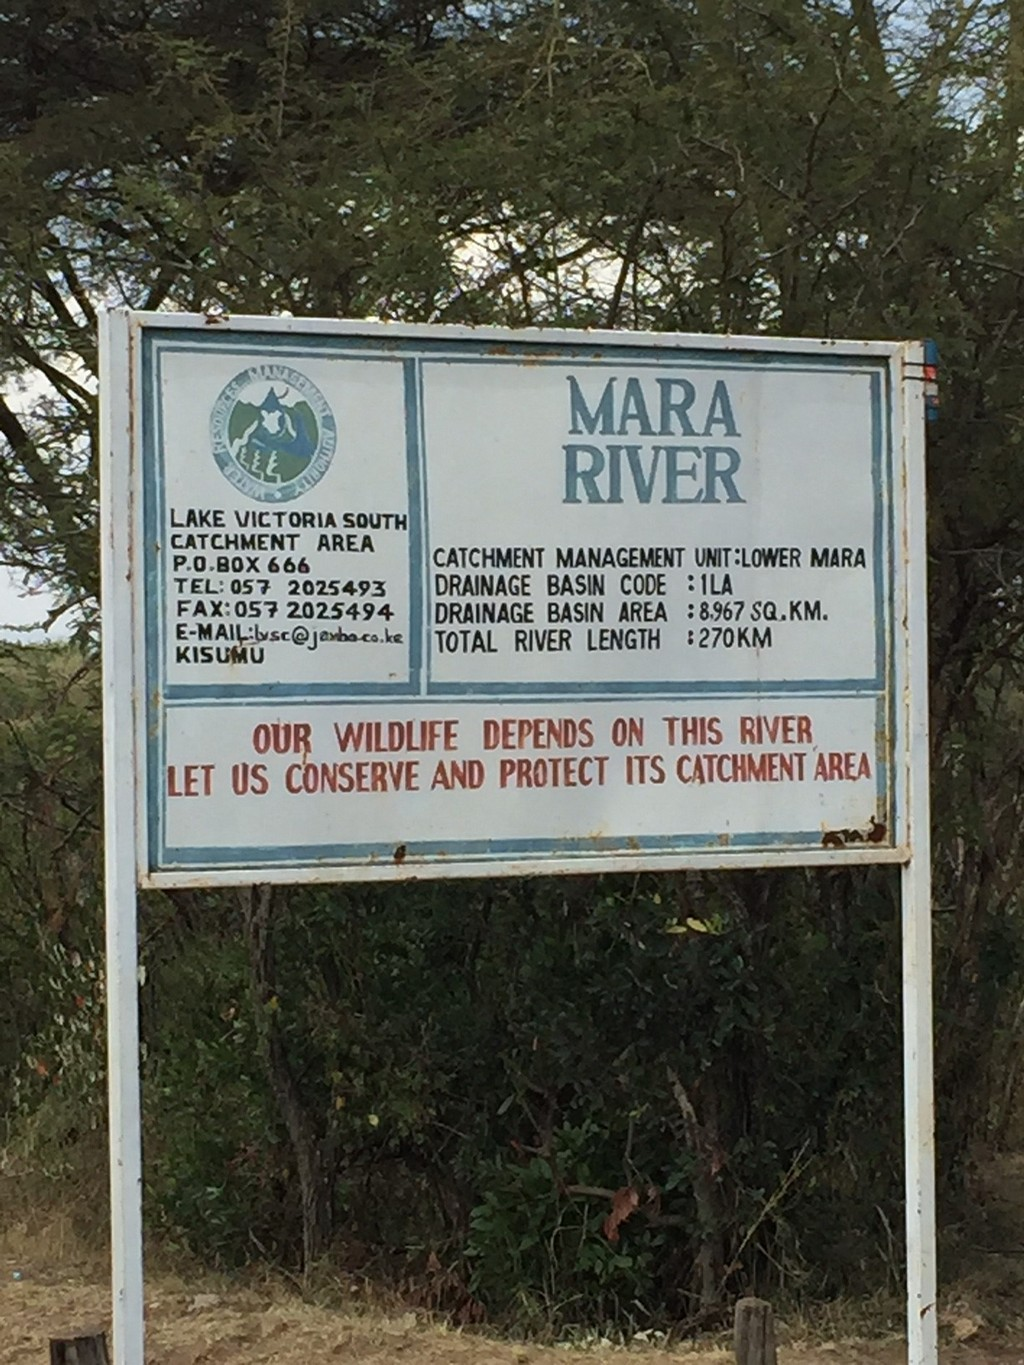 The Mara River sign, right on the border of Kenya and Tanzania